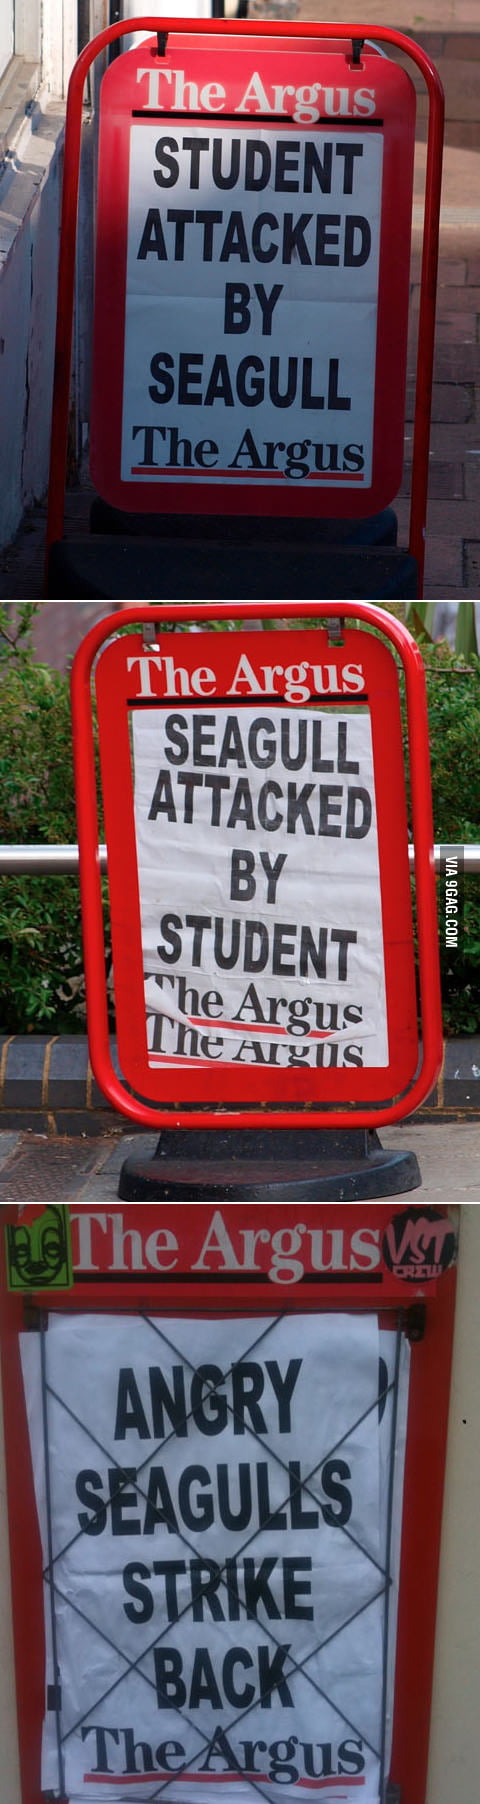 There is a war between seagulls and student in my town.